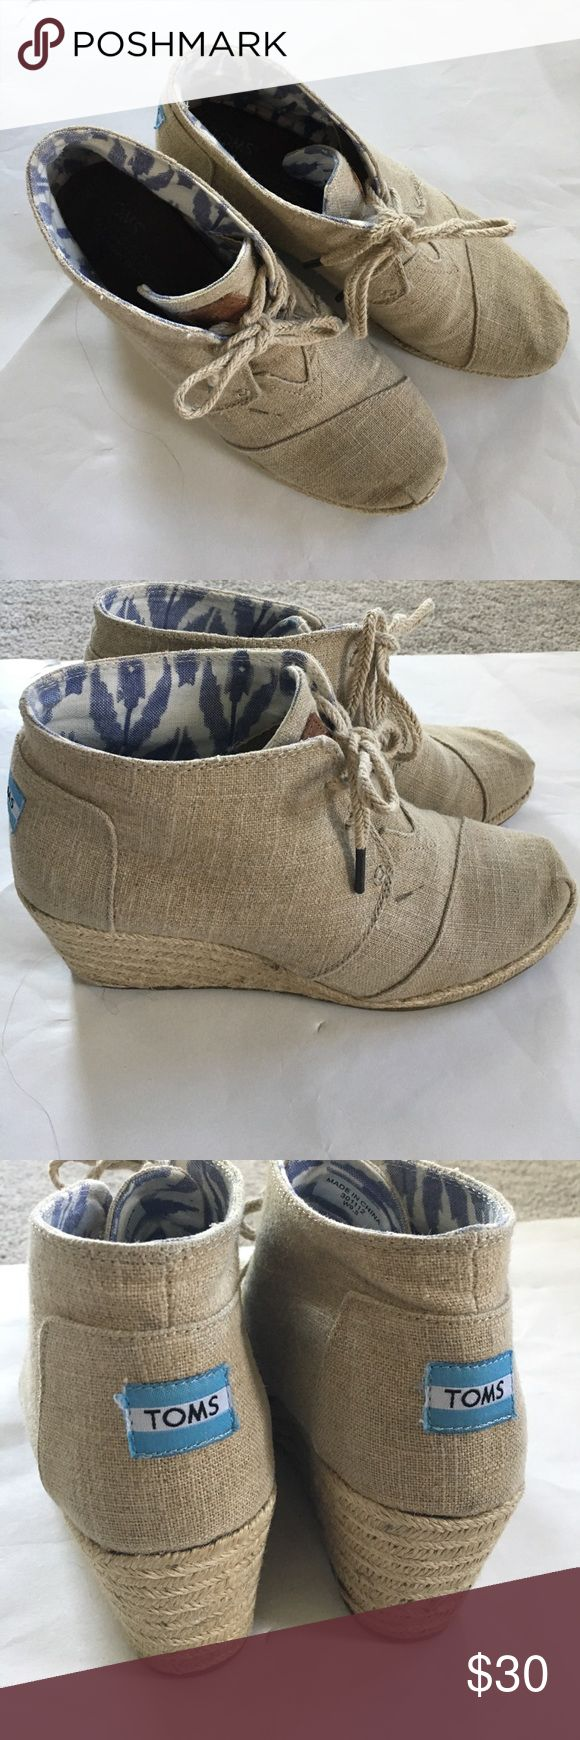 Toms wedges Toms wedges in hemp with espadrille bottom. Women's size 9.5. Worn a handful of times, still good condition and lots of life left! TOMS Shoes Wedges